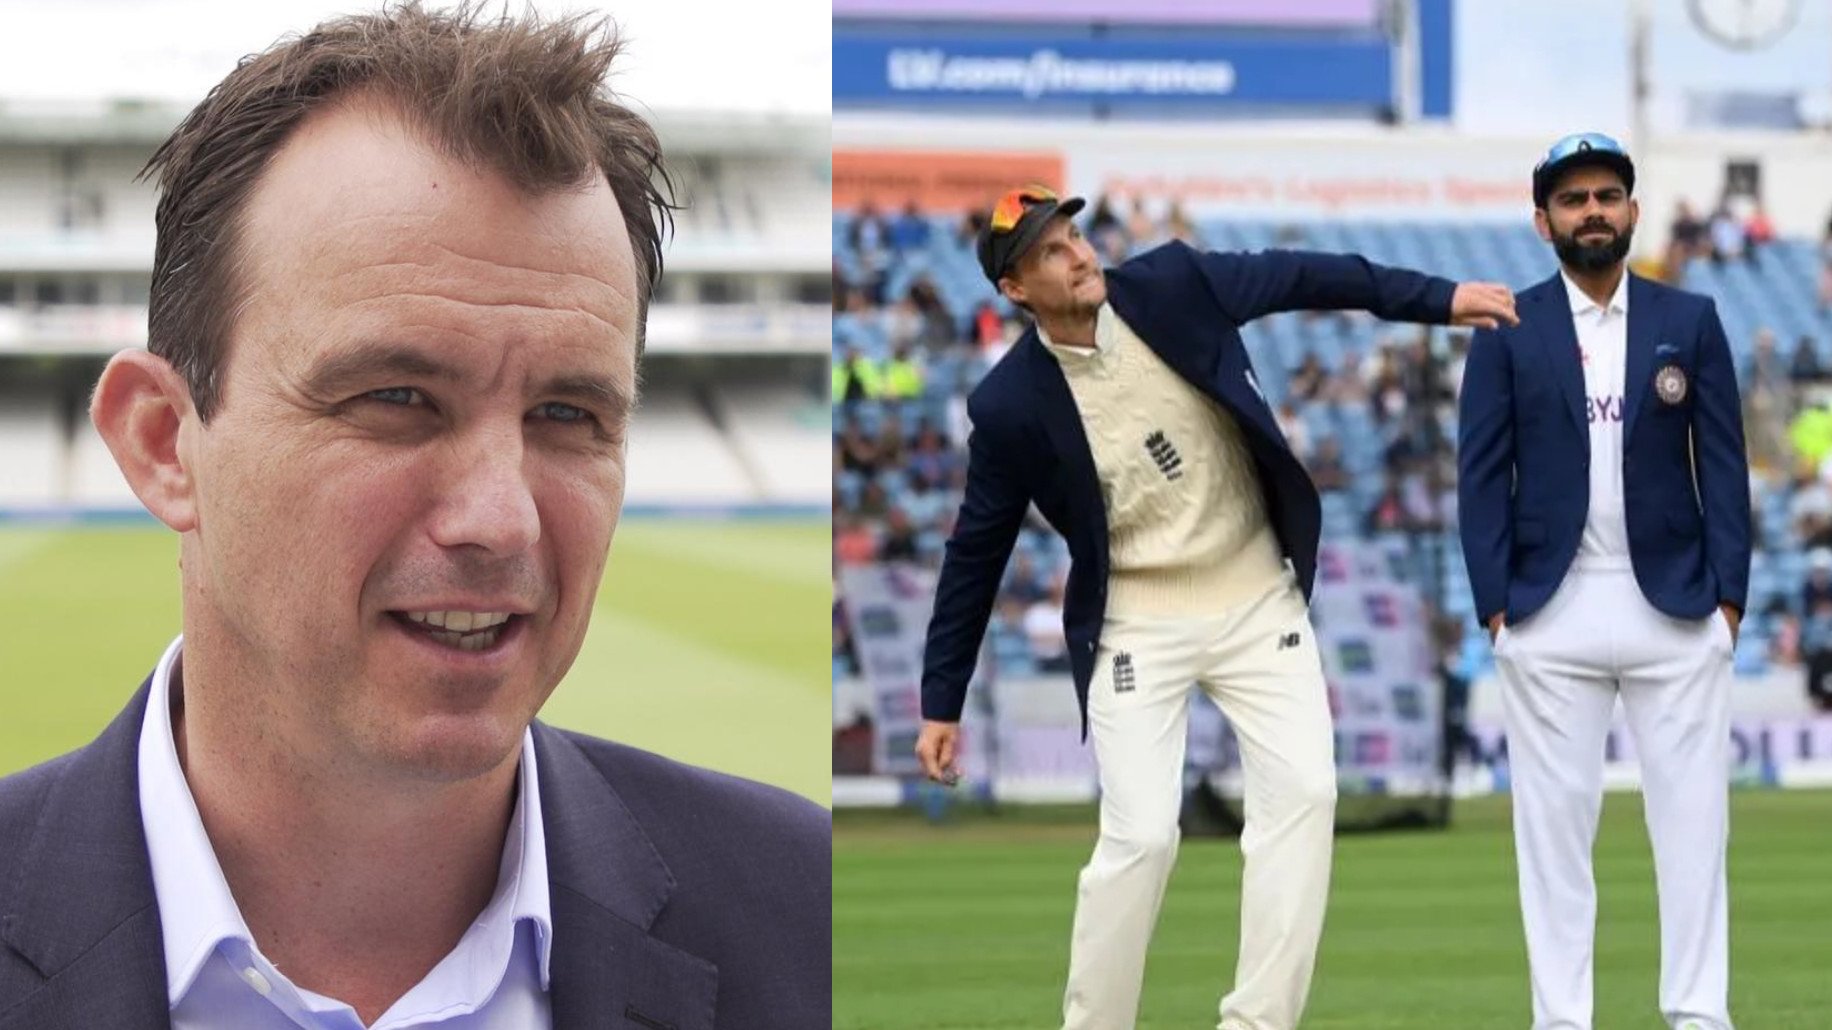 ENG v IND 2021: WATCH- Any rescheduled match would be a one-off affair: ECB chief Tom Harrison